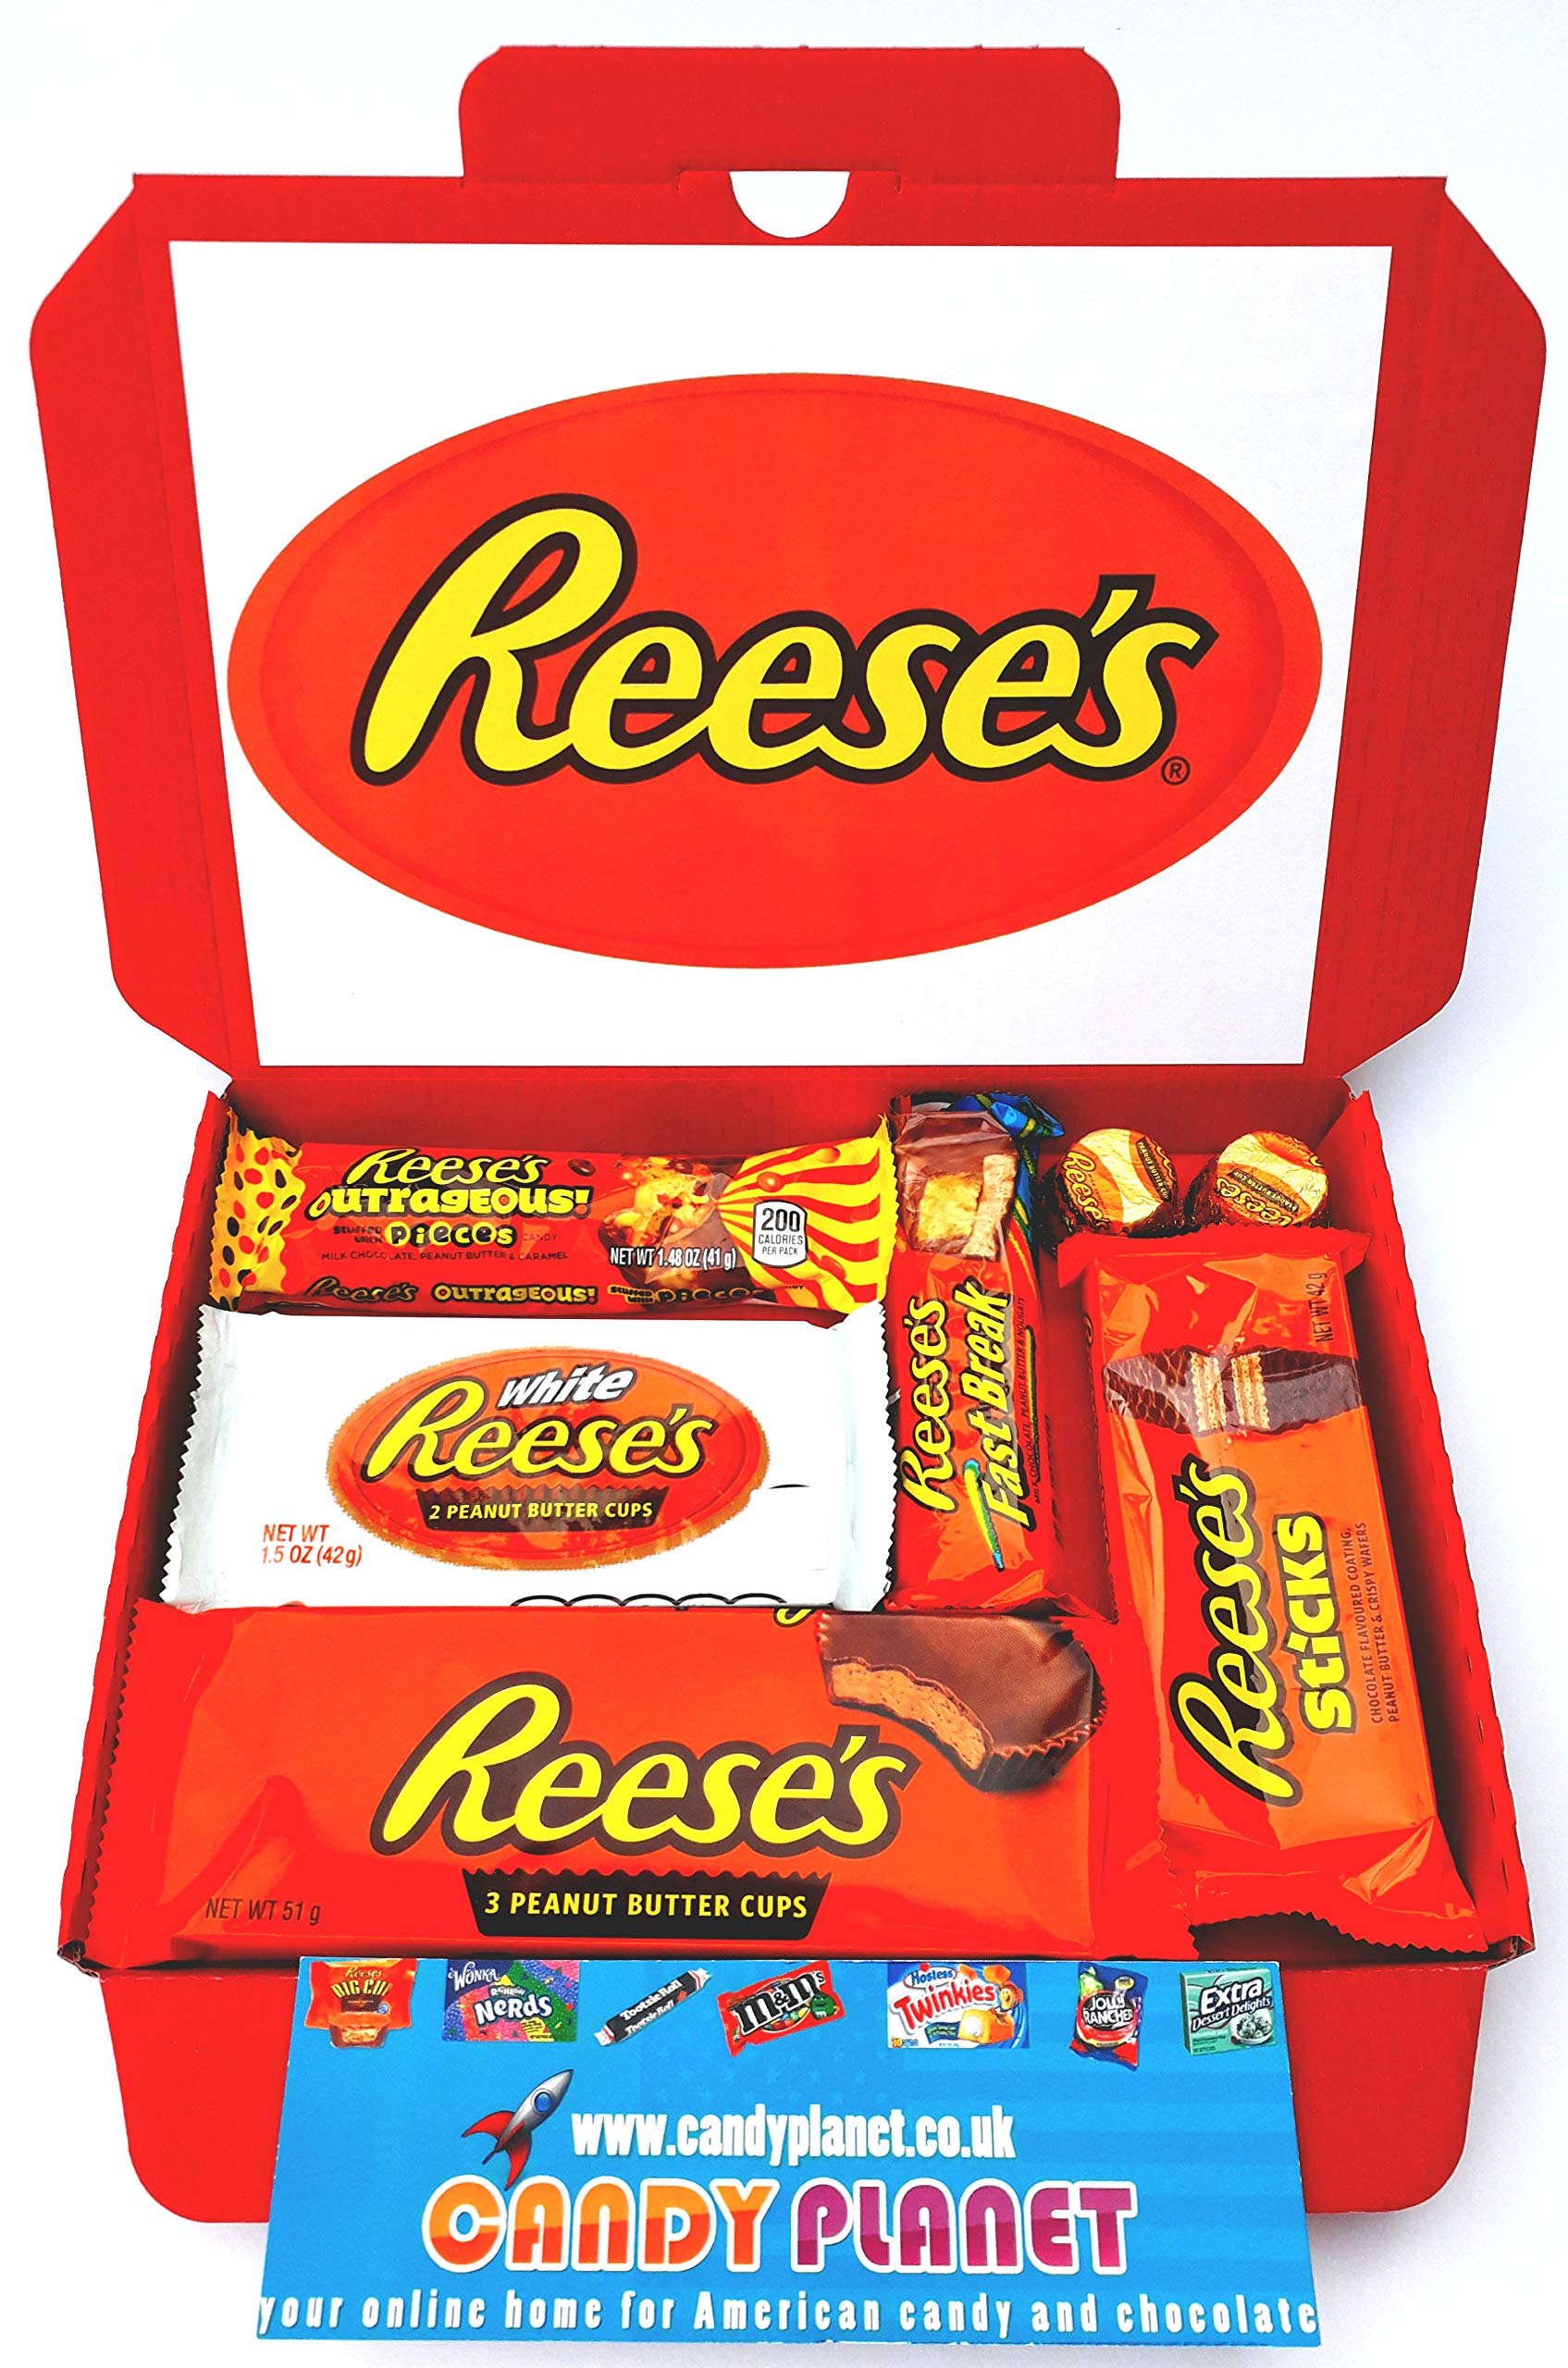 Reese's American Candy Gift Box Hamper | Peanut Butter Chocolate Selection | Letterbox Friendly Glossy Red Box | Reeses White Fast Break Crispy Crunchy Sticks | Hamper Exclusive to CANDYPLANET